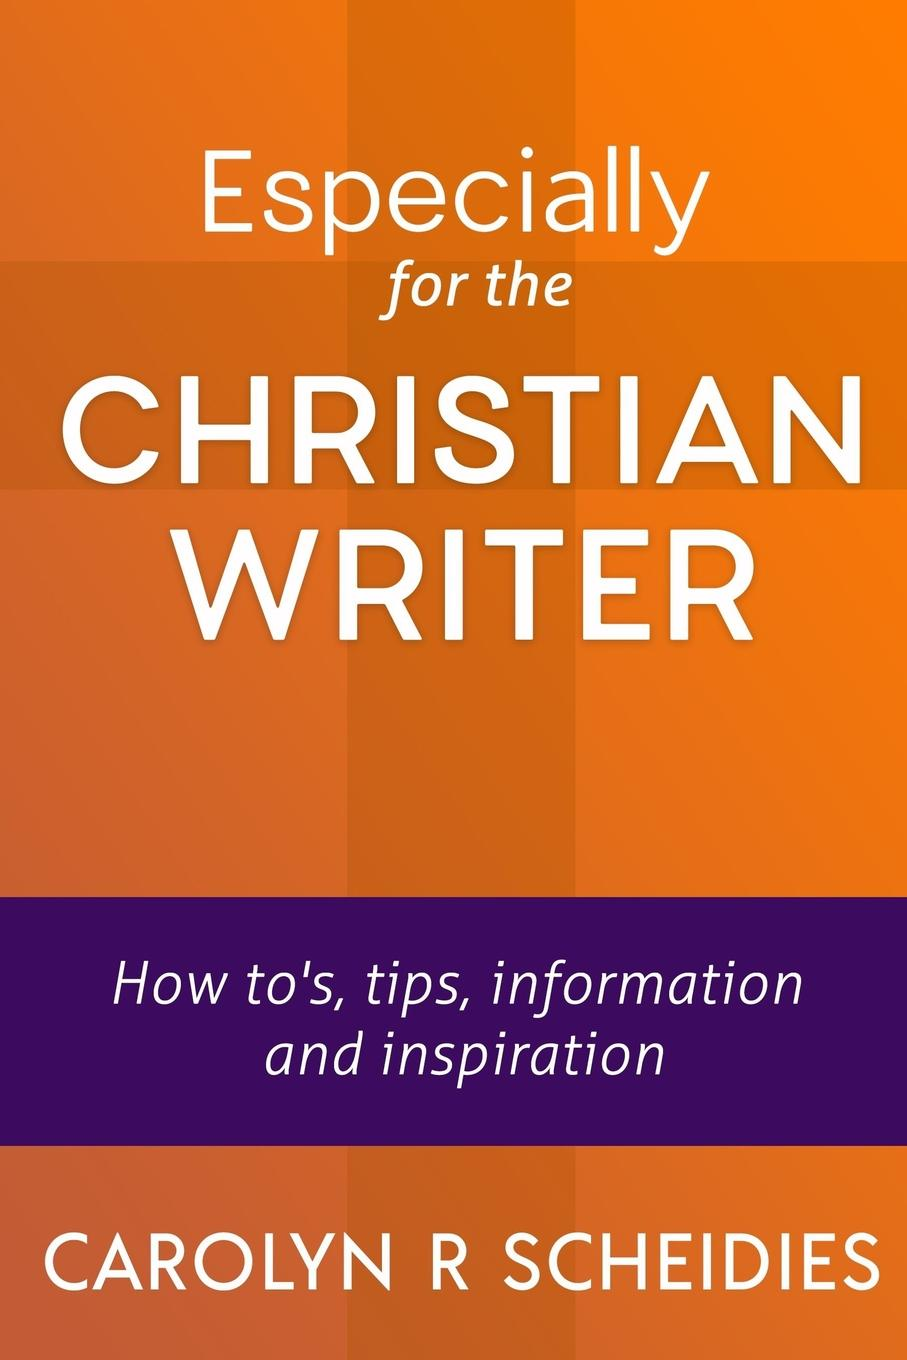 Carolyn R Scheidies Especially for the Christian Writer to have